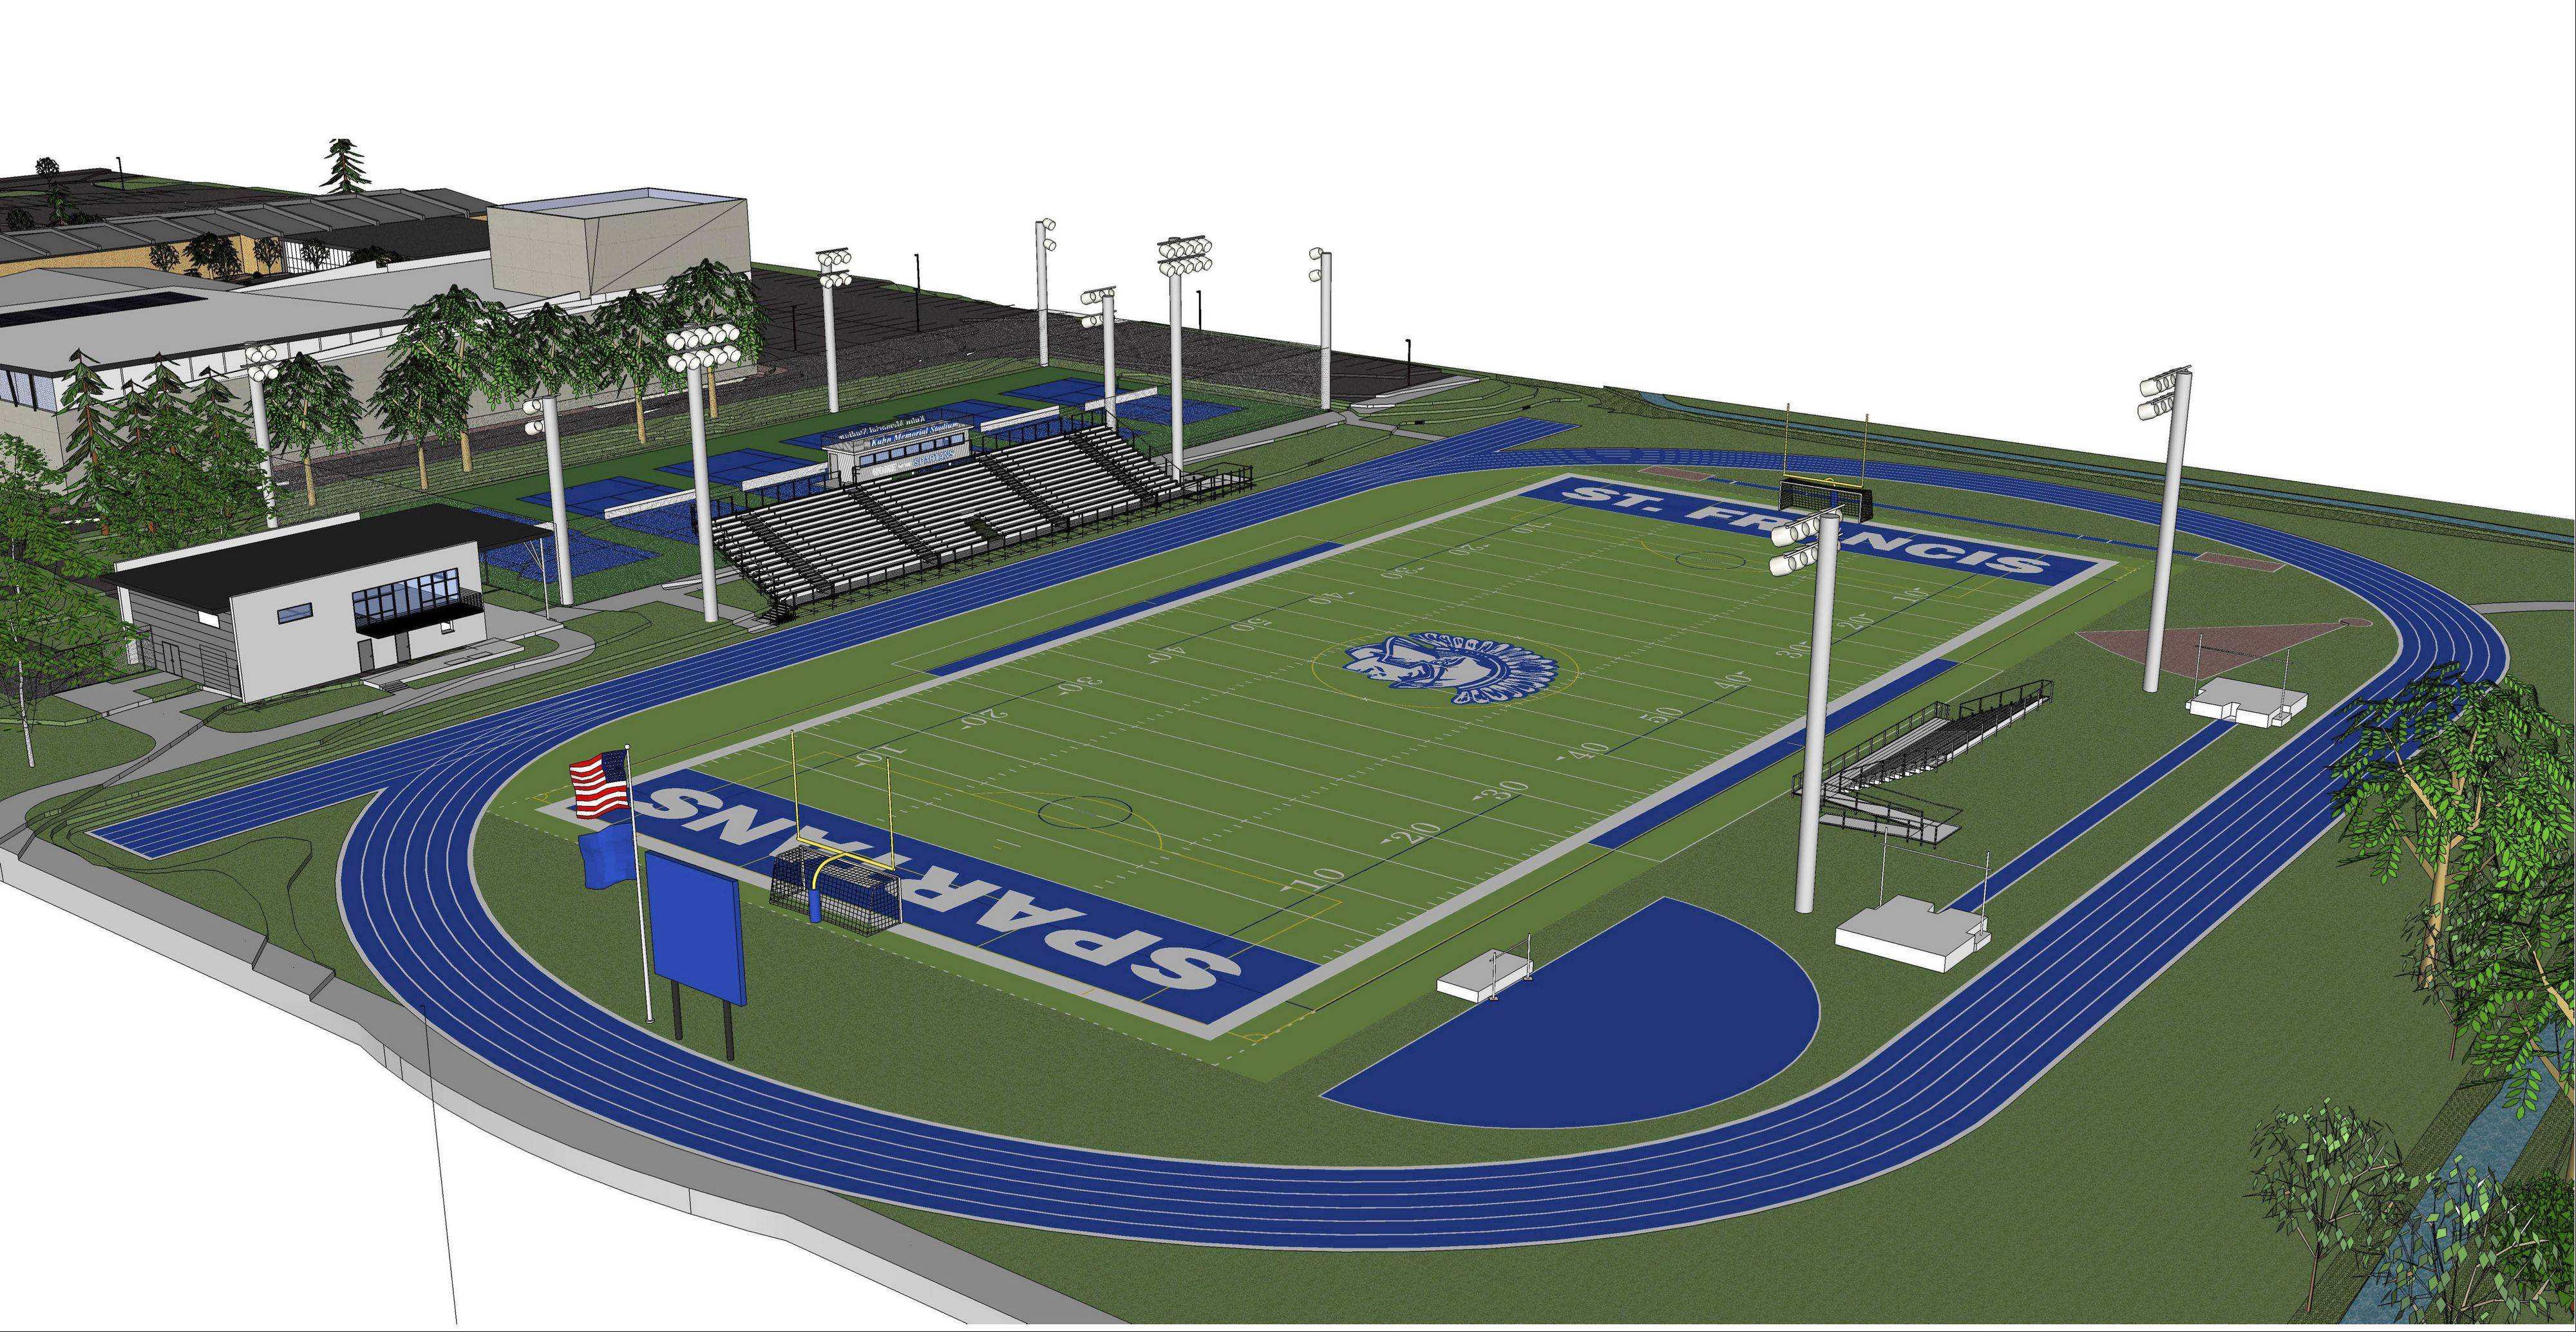 A new $5 million athletic complex at St. Francis High School in Wheaton is expected to be ready to open in time for the fall sports season in August.